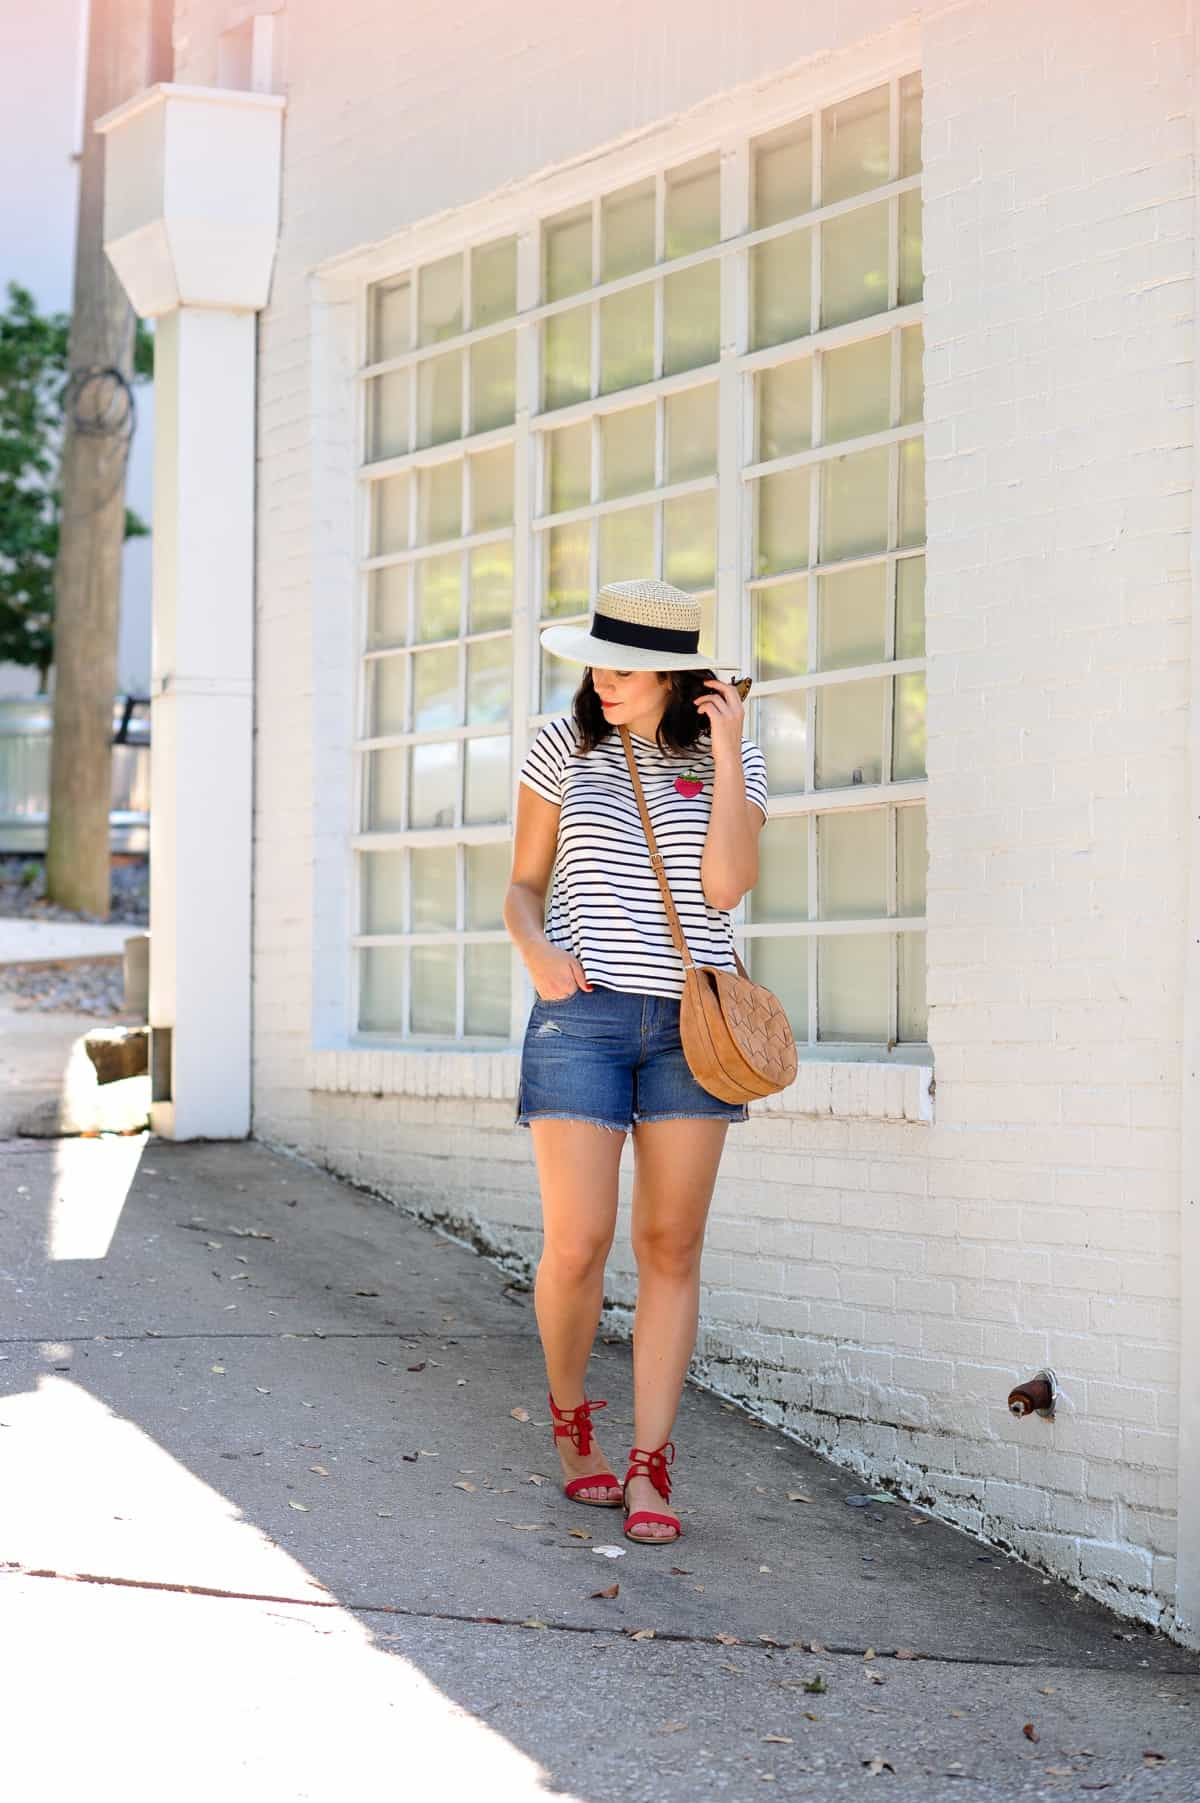 4th of july outfit ideas, striped tee outfits - @mystylevita - 11